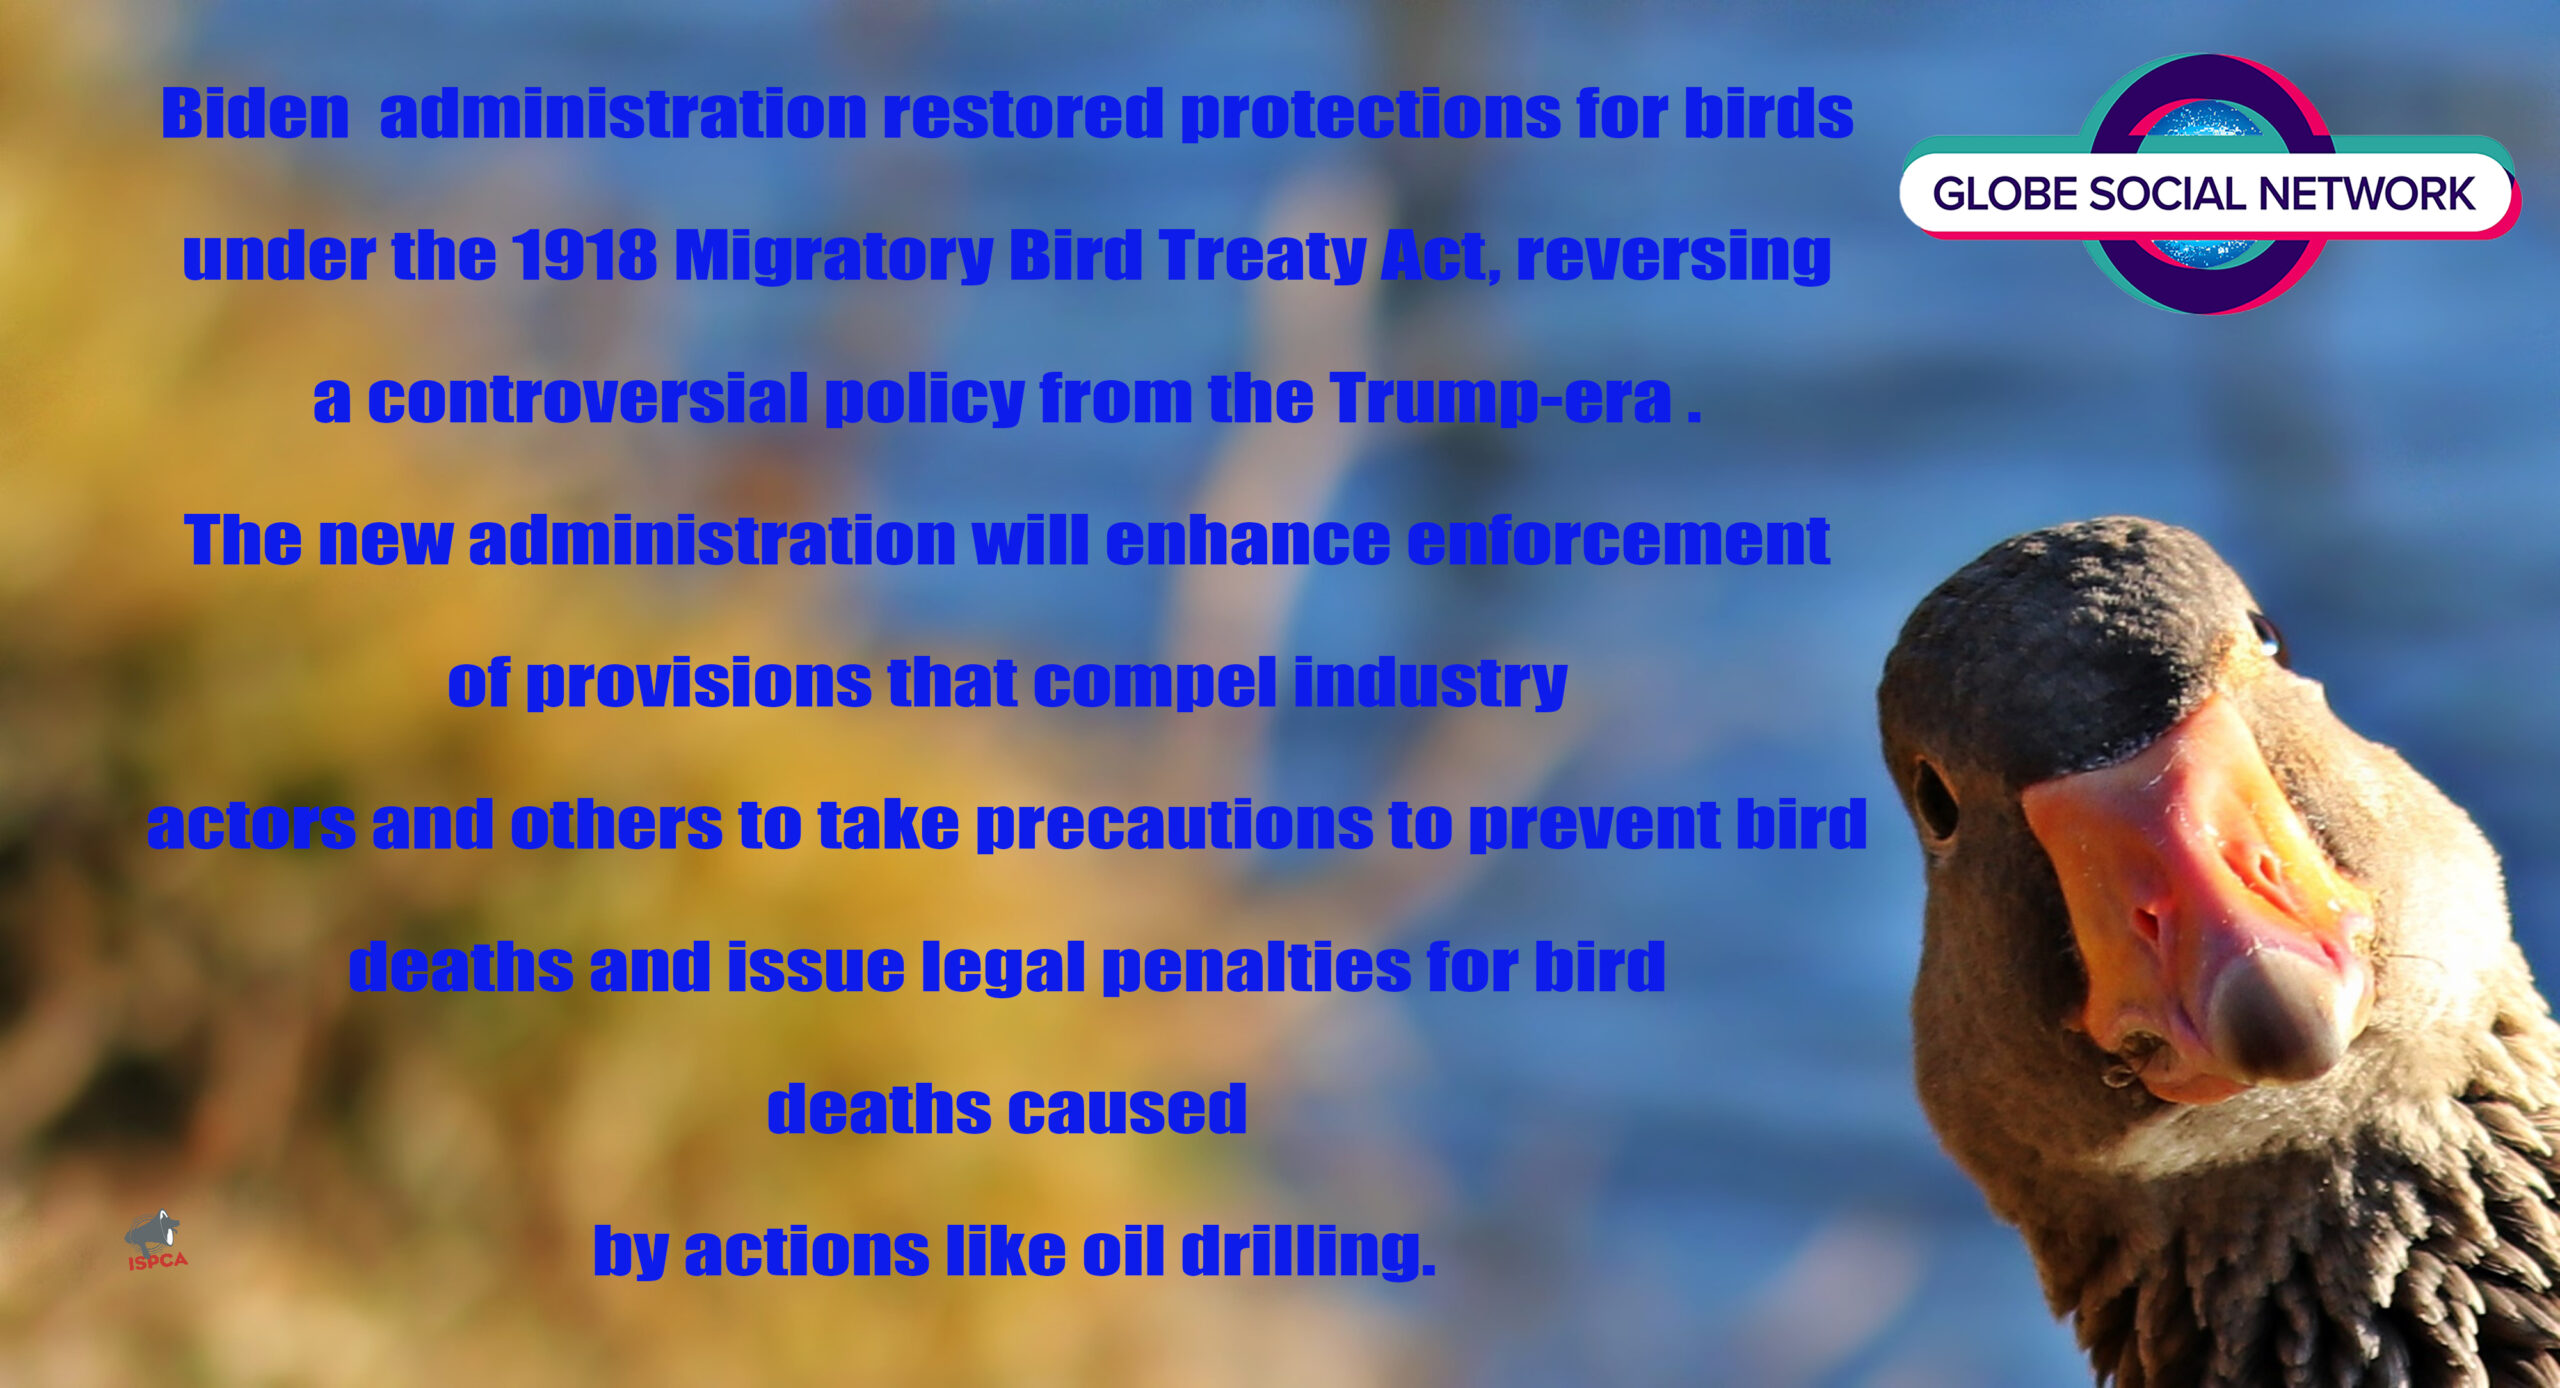 Sierra Club Welcomes Biden Administration's Restoration of Protections for Migratory Birds